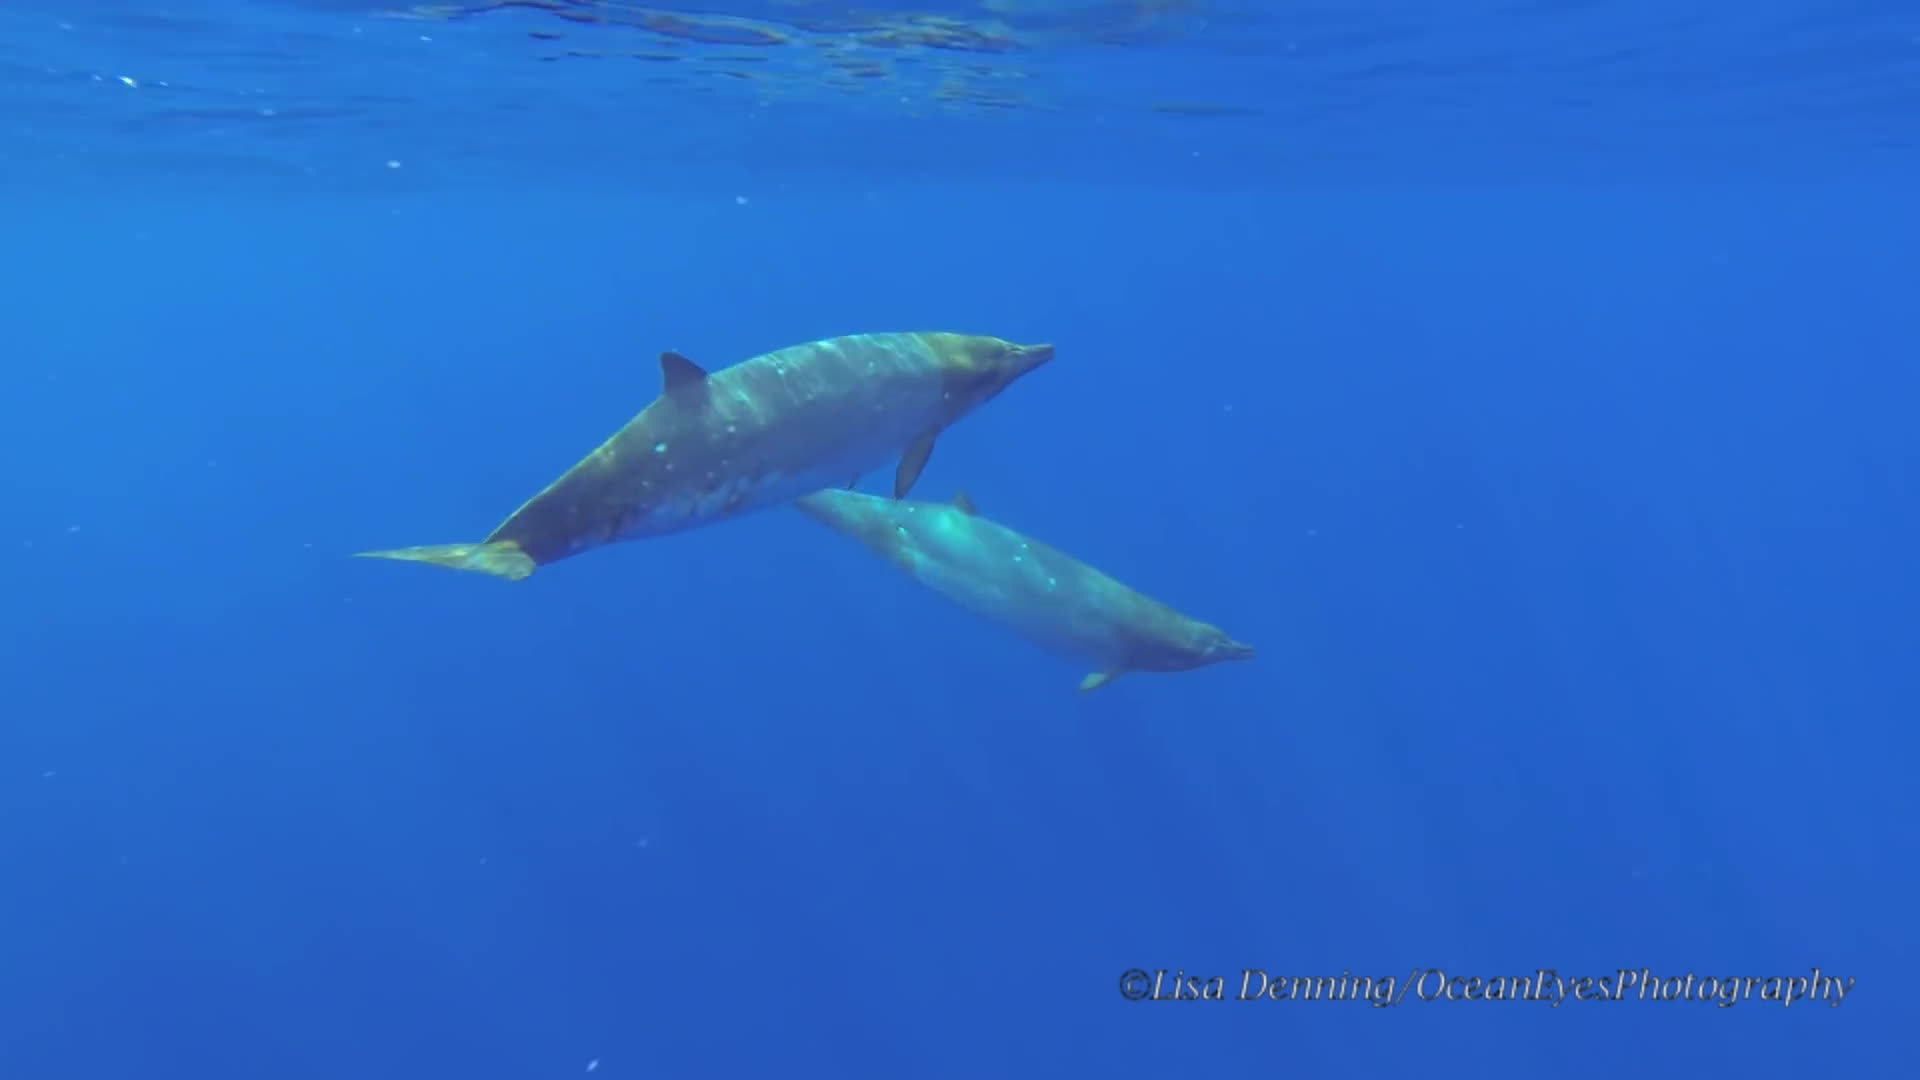 Beaked Whale Hawaii, Beaked Whales, Blainville's Beaked Whale, Free Whales, Freedive Whales, Hawaii Beaked Whales, Ocean Eyes Photography, Rare whales, Swim with Whales, Toothed whales, Underwater Beaked Whales, Underwater Footage Whales, Underwater film whales, Whales Underwater, blainvilles beaked whales GIFs